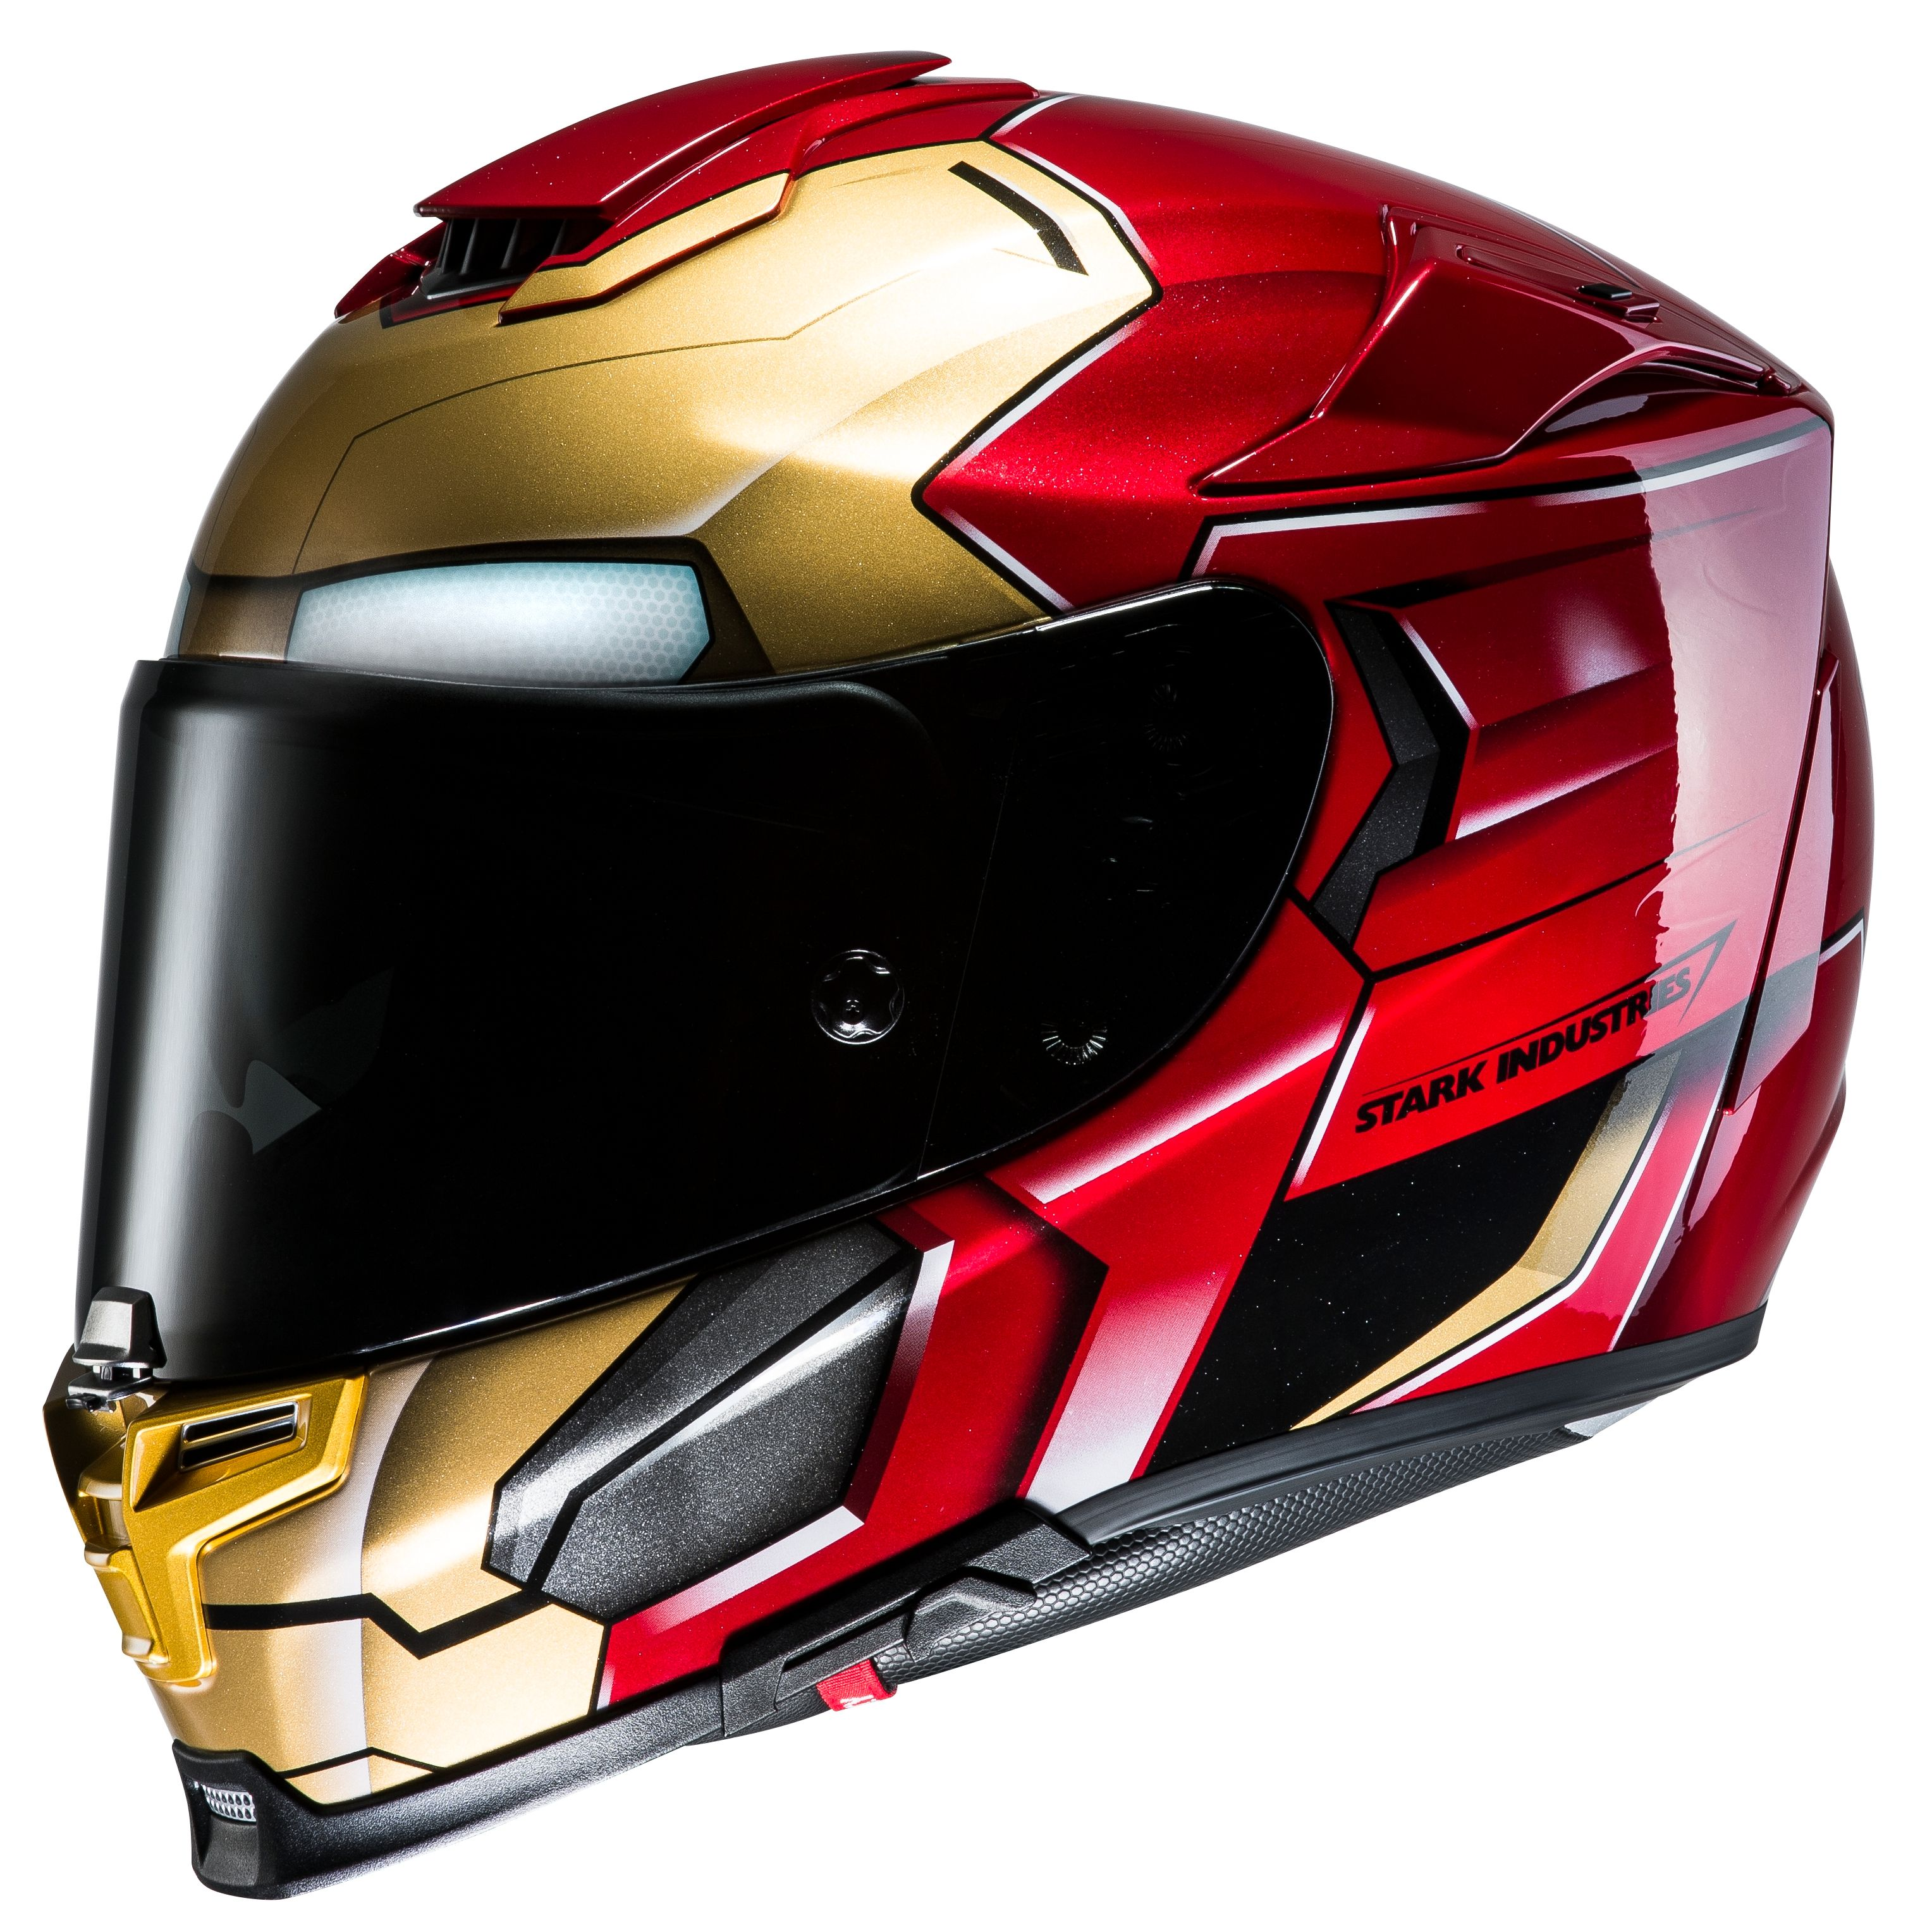 casque hjc rpha 70 iron man homecoming casque int gral. Black Bedroom Furniture Sets. Home Design Ideas